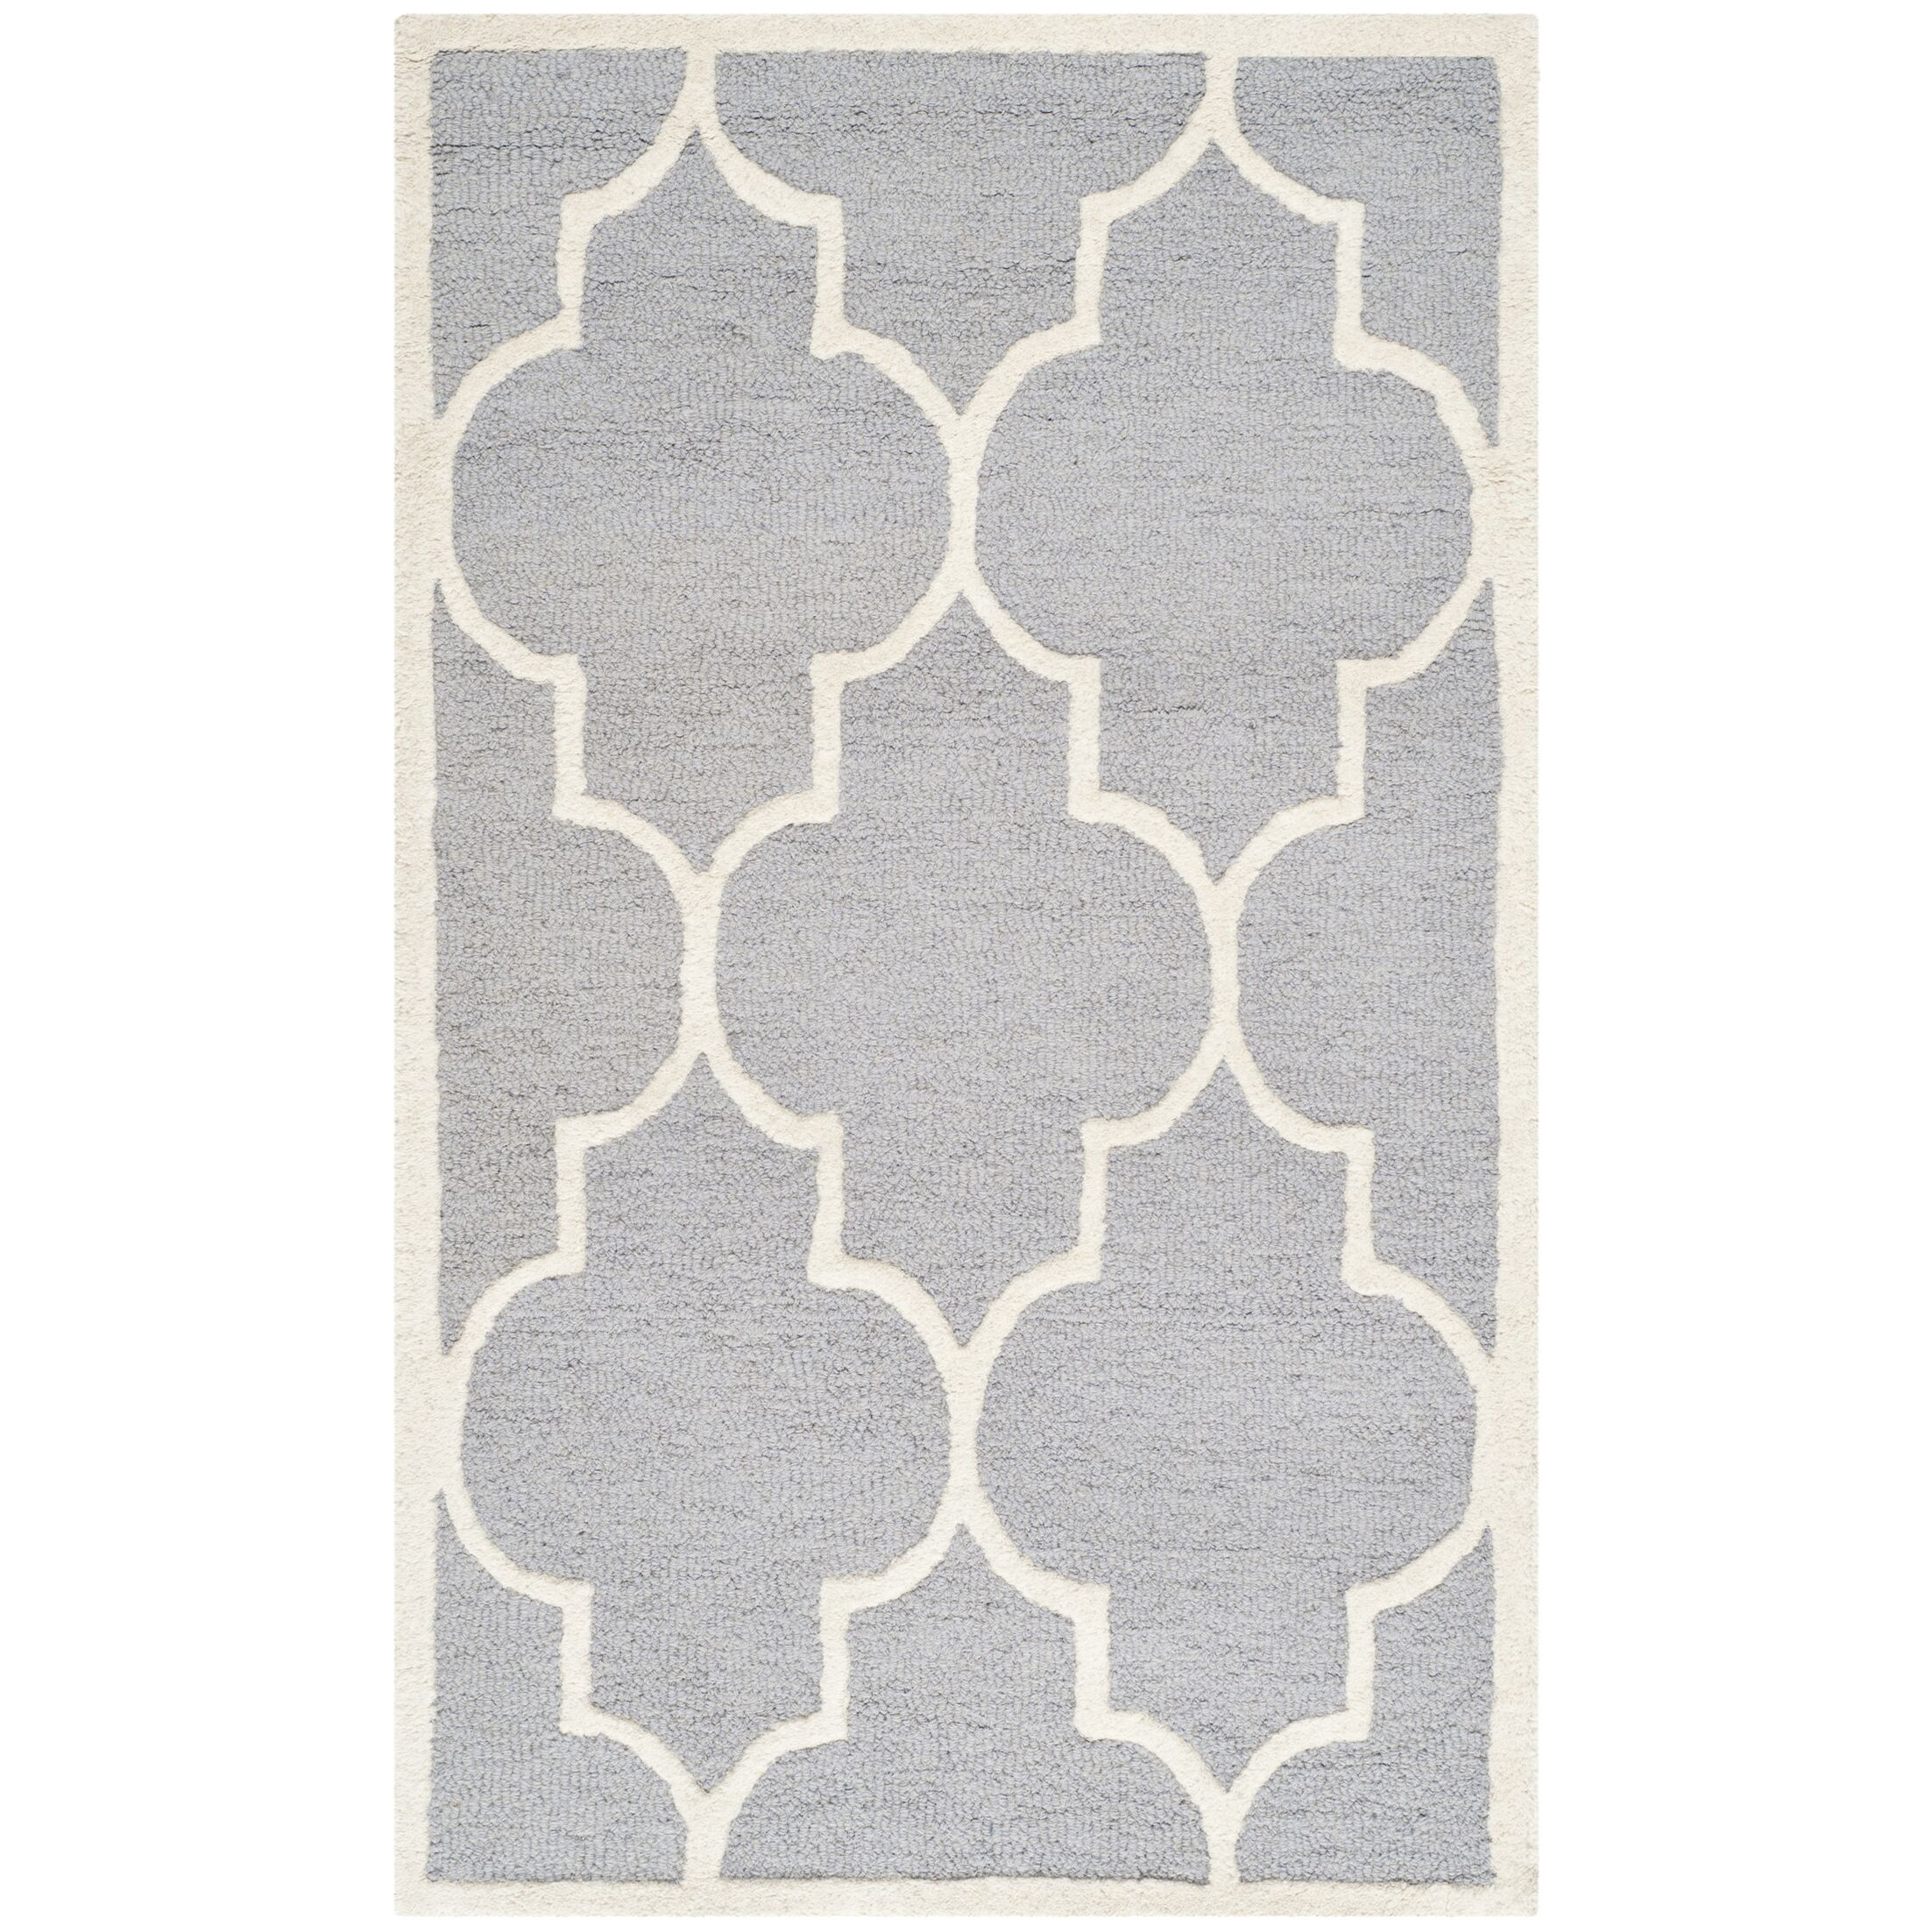 Martins Hand-Tufted Wool Gray/Ivory Area Rug Rug Size: Rectangle 11' x 15'